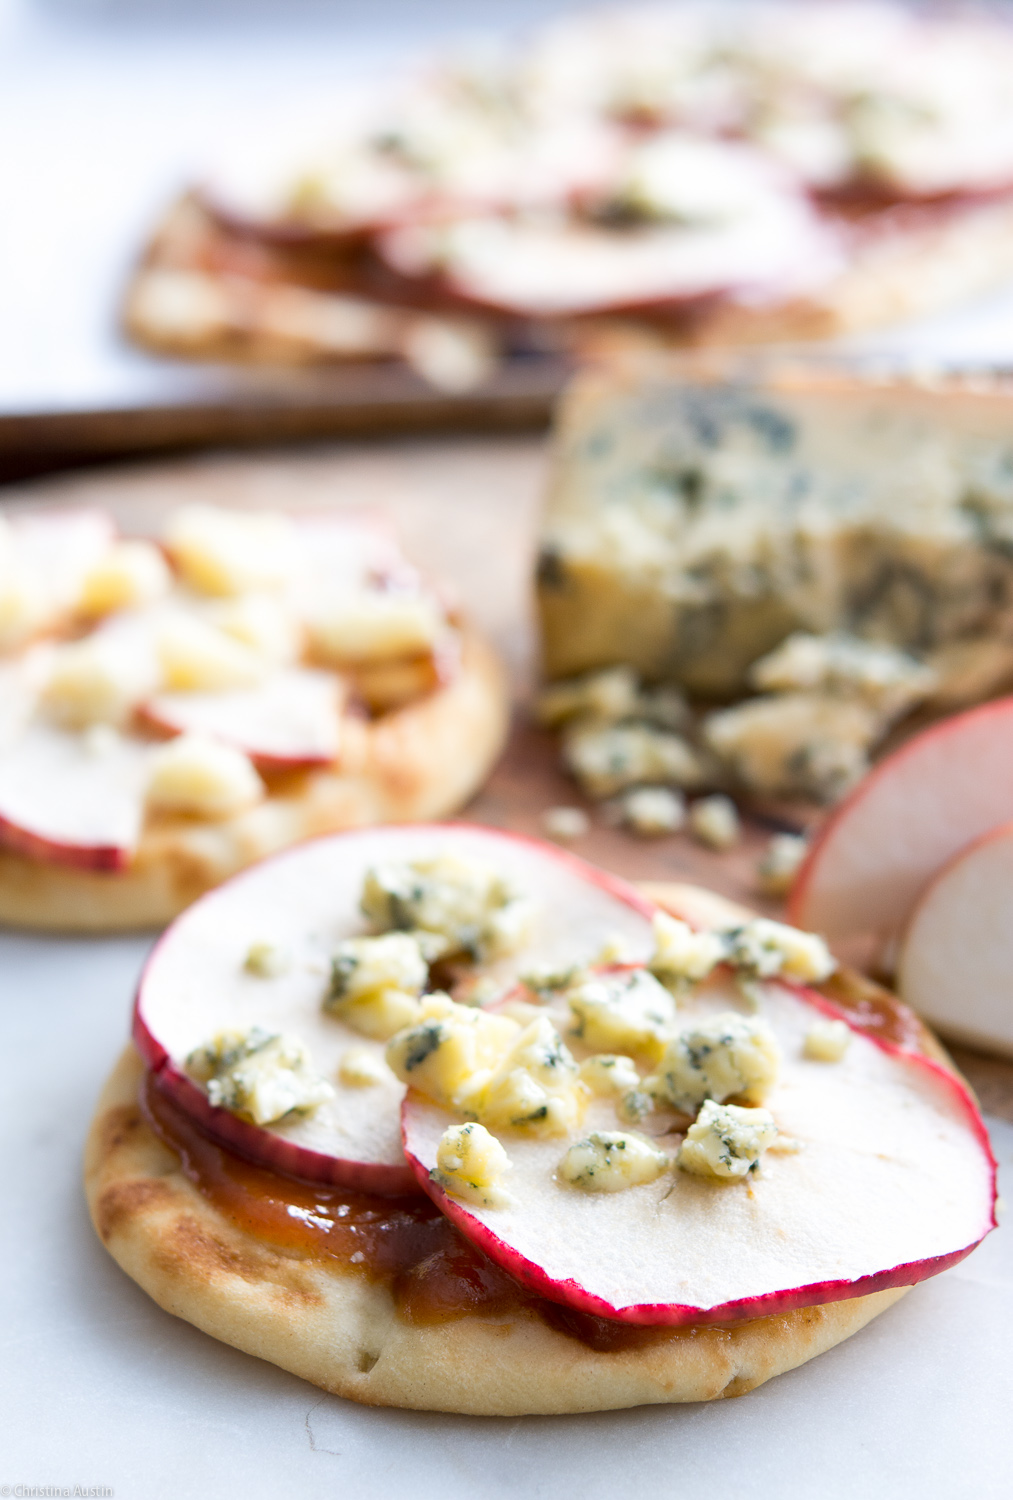 Warm Flatbread with Apples and Blue Cheese